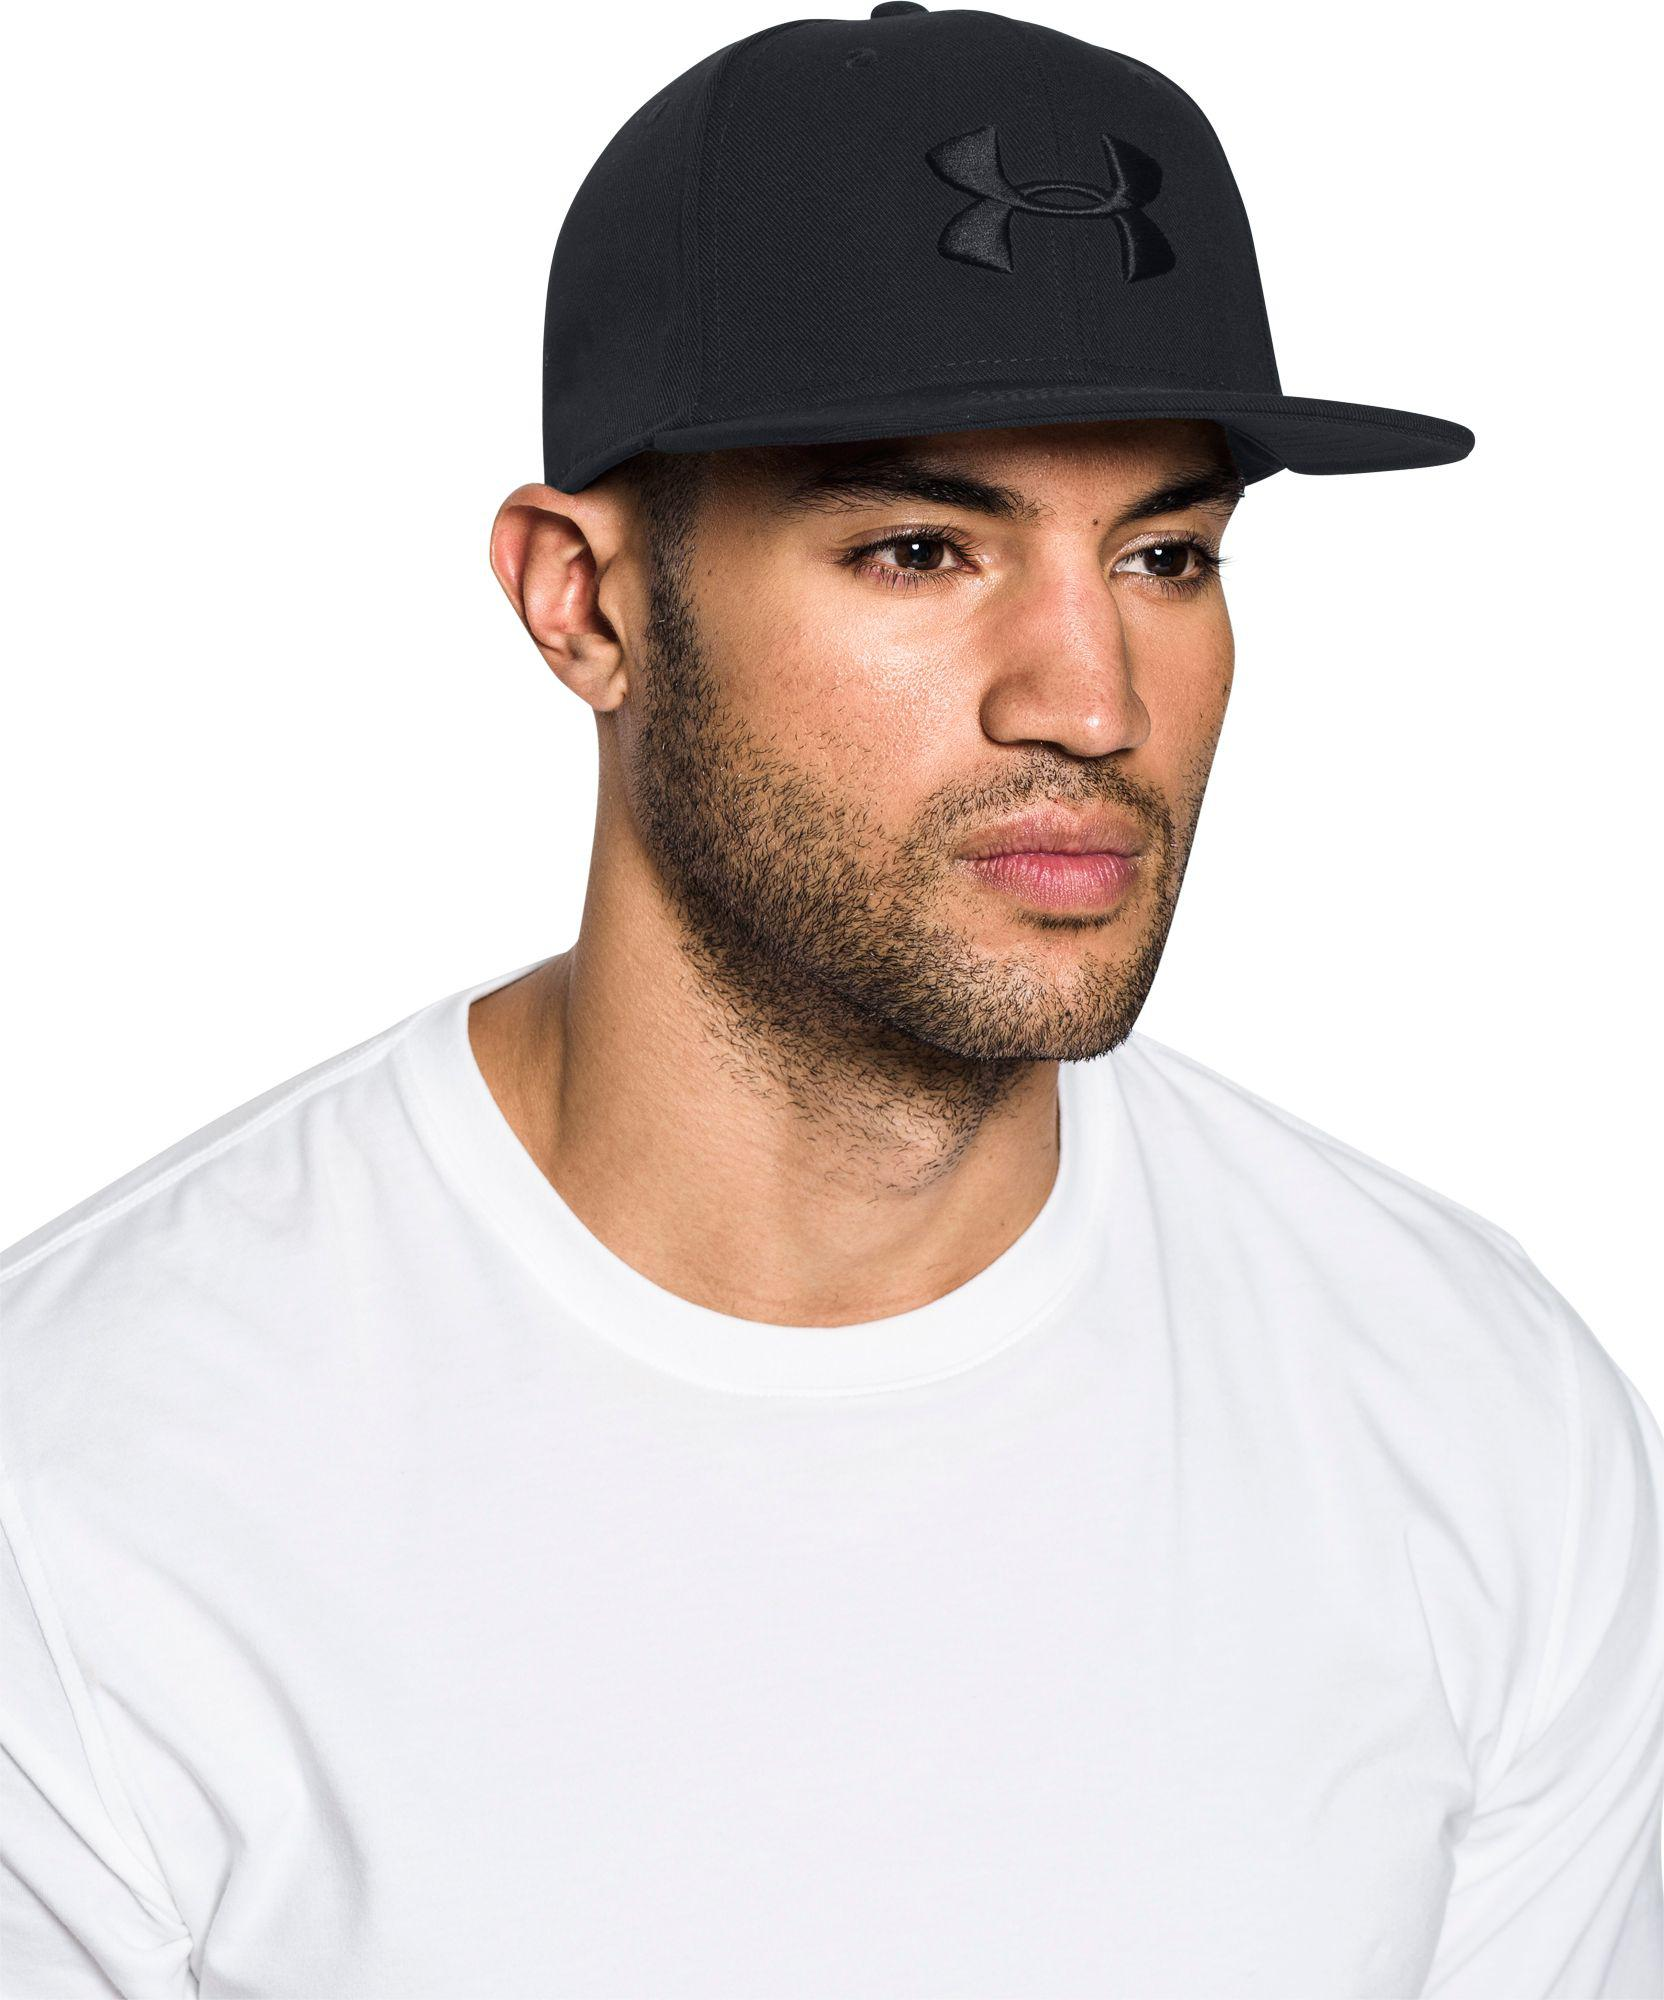 9bfc7b5ad53 Lyst - Under Armour Elevate Update Hat in Black for Men